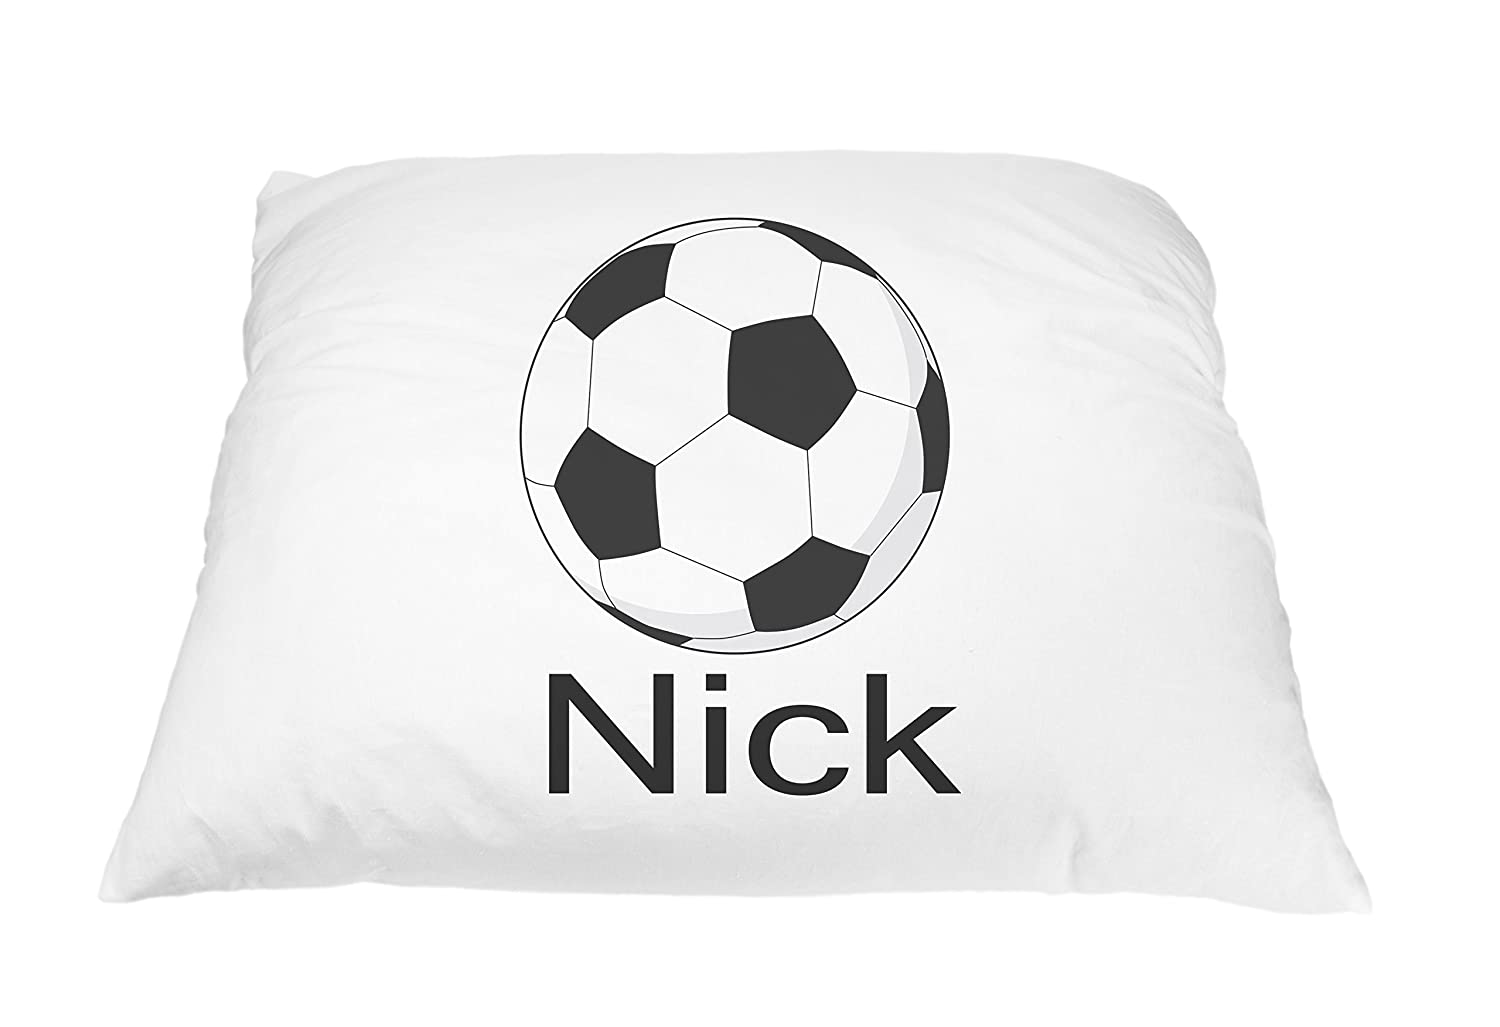 Personalized Kid's Soccer Ball Sports Pillowcase Microfiber Polyester Standard 20 by 30 Inches, Kids Bedding Pillows, Custom Pillowcase, Soccer Pillow Cover, Soccer Gift Personalized Pillows for Kids Pillows2